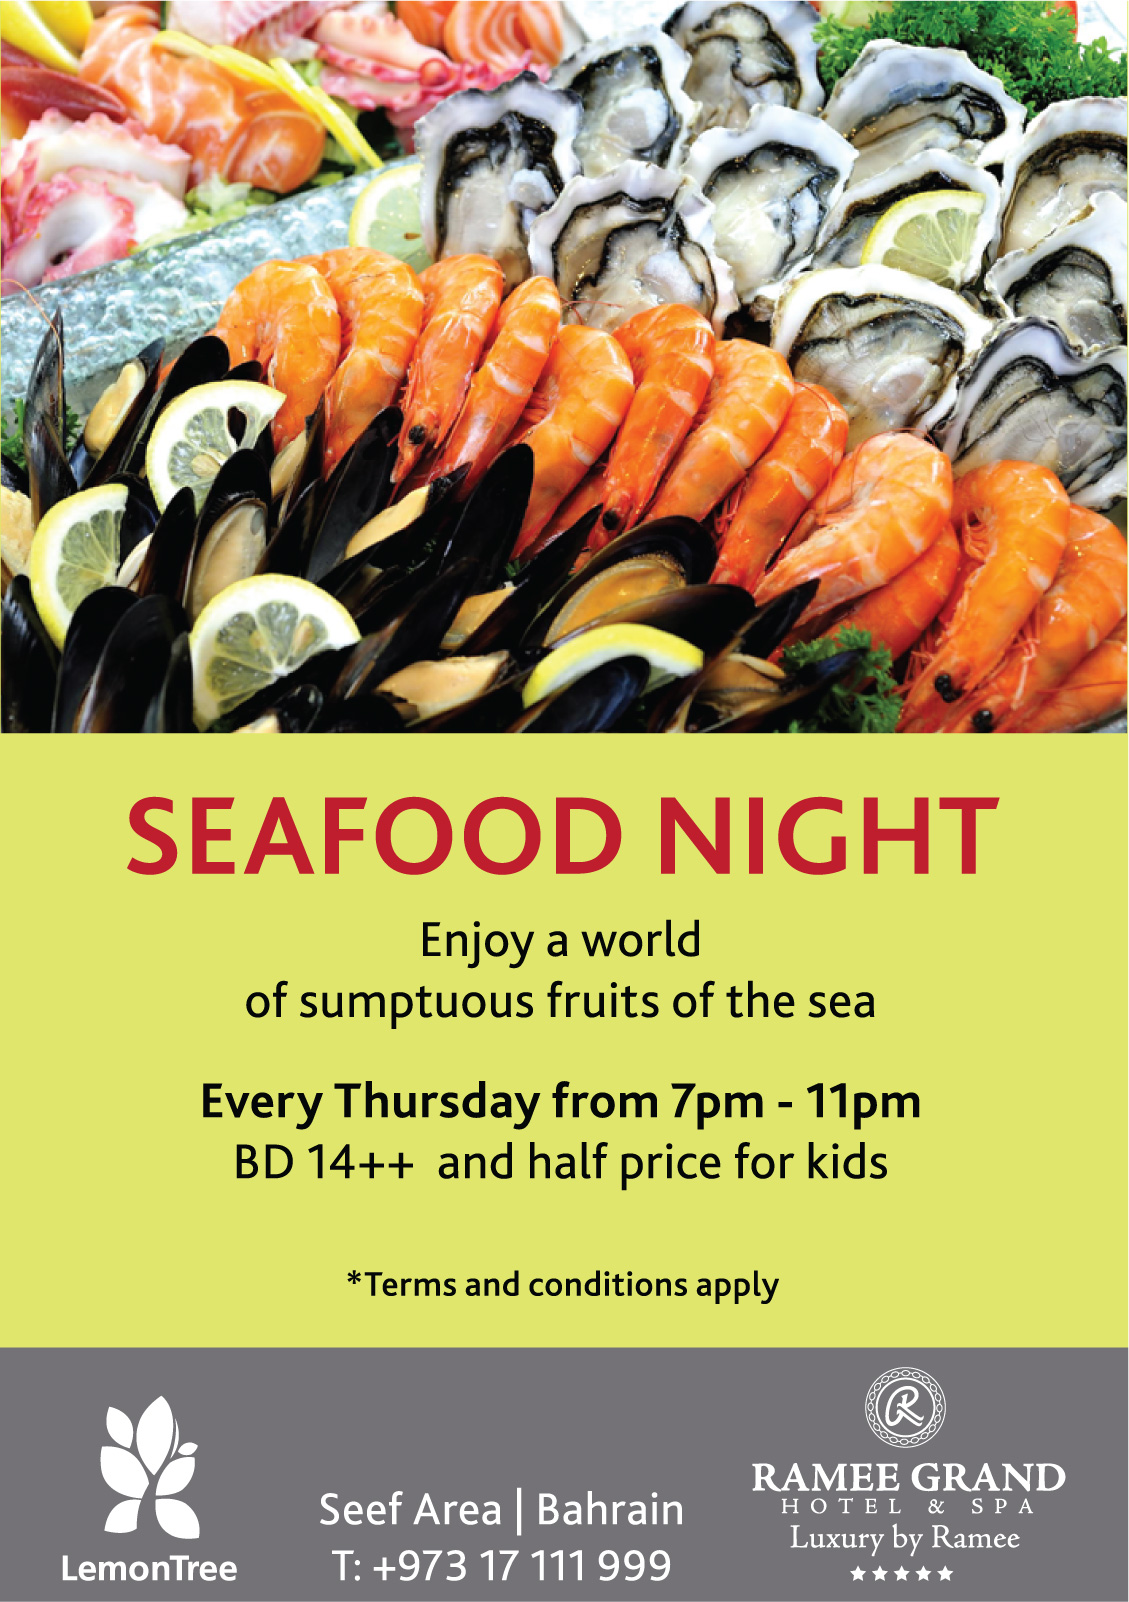 Seafood Night Events Whatsupbahrain Net